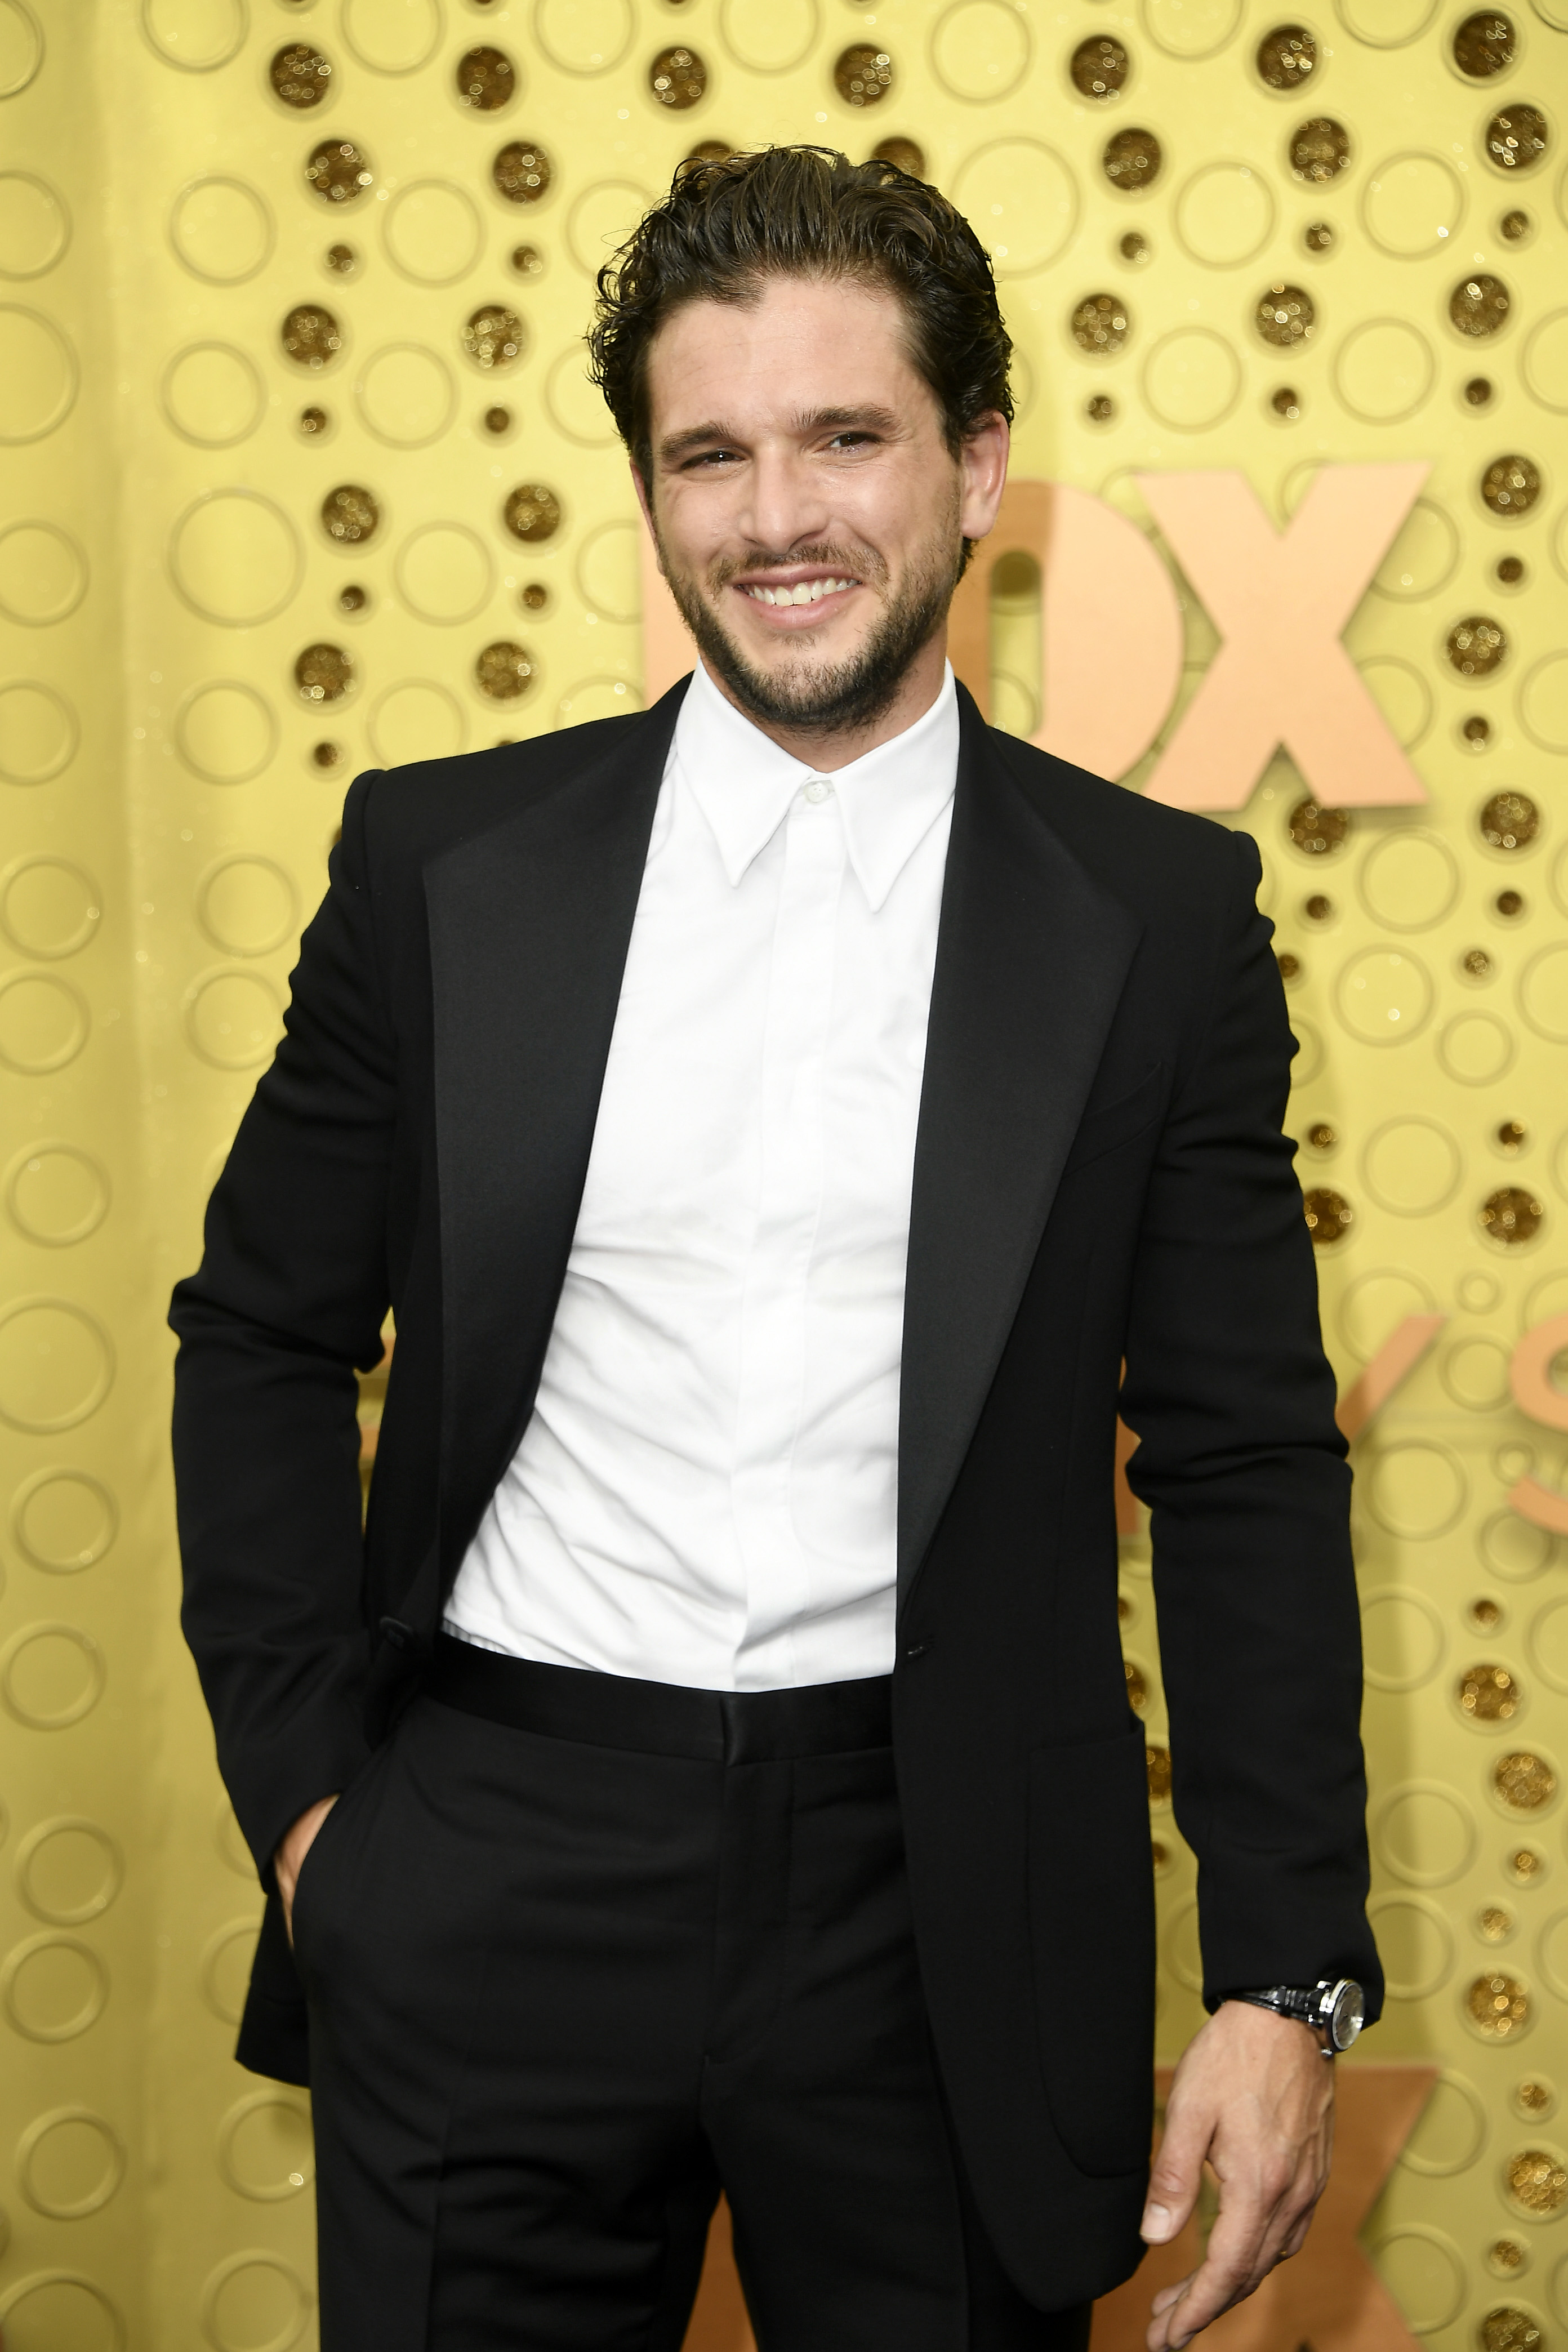 Game of Thrones star Kit Harington feels Jon Snow fits THIS Harry Potter house; Hint: it's not Gryffindor